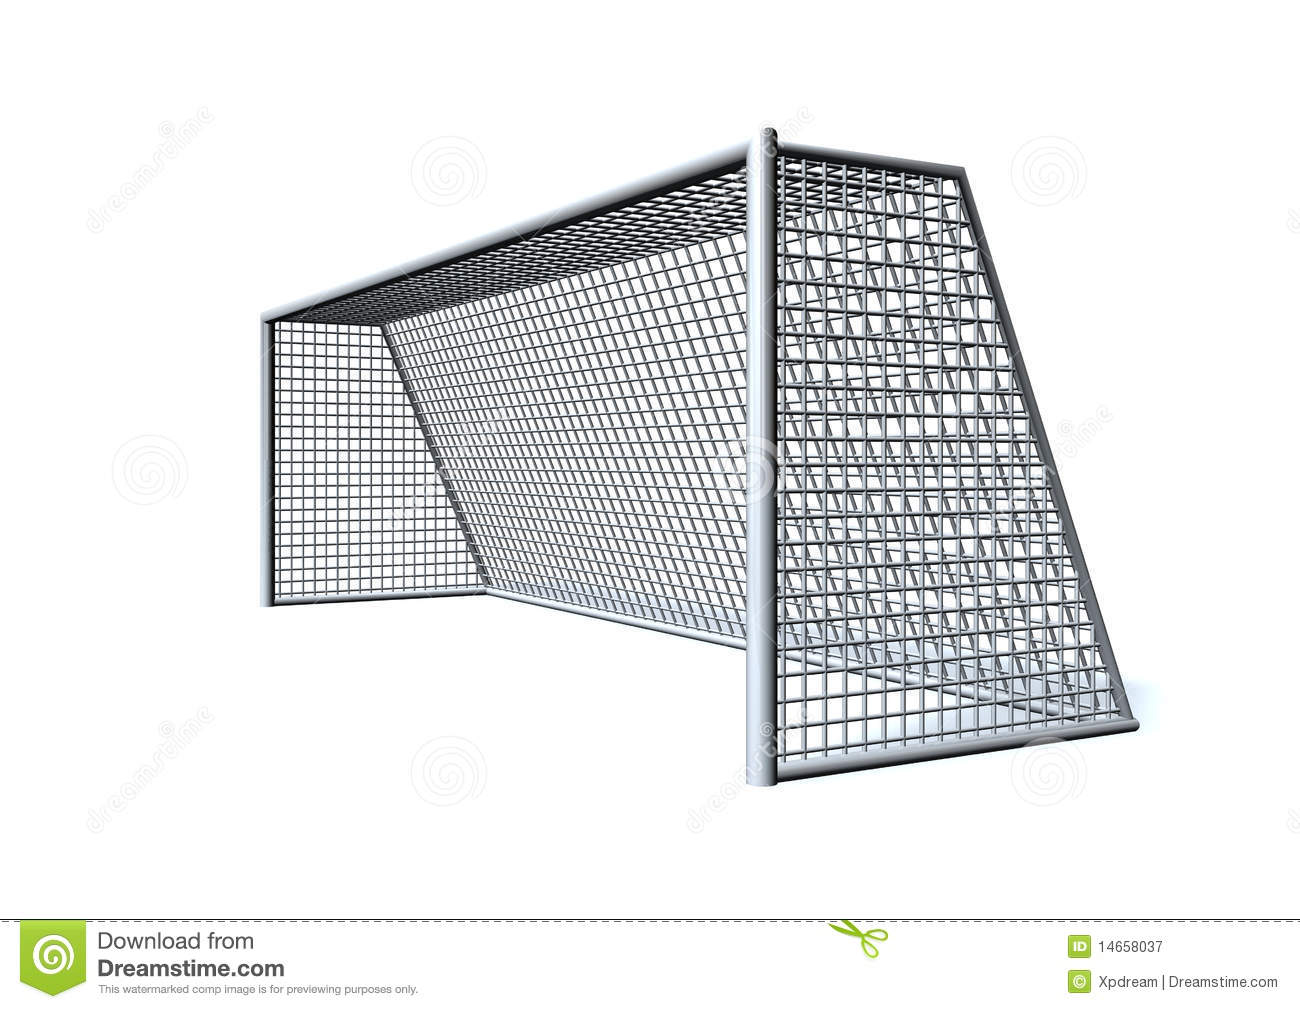 Soccer Goal Royalty Free Stock Photography - Image: 14658037